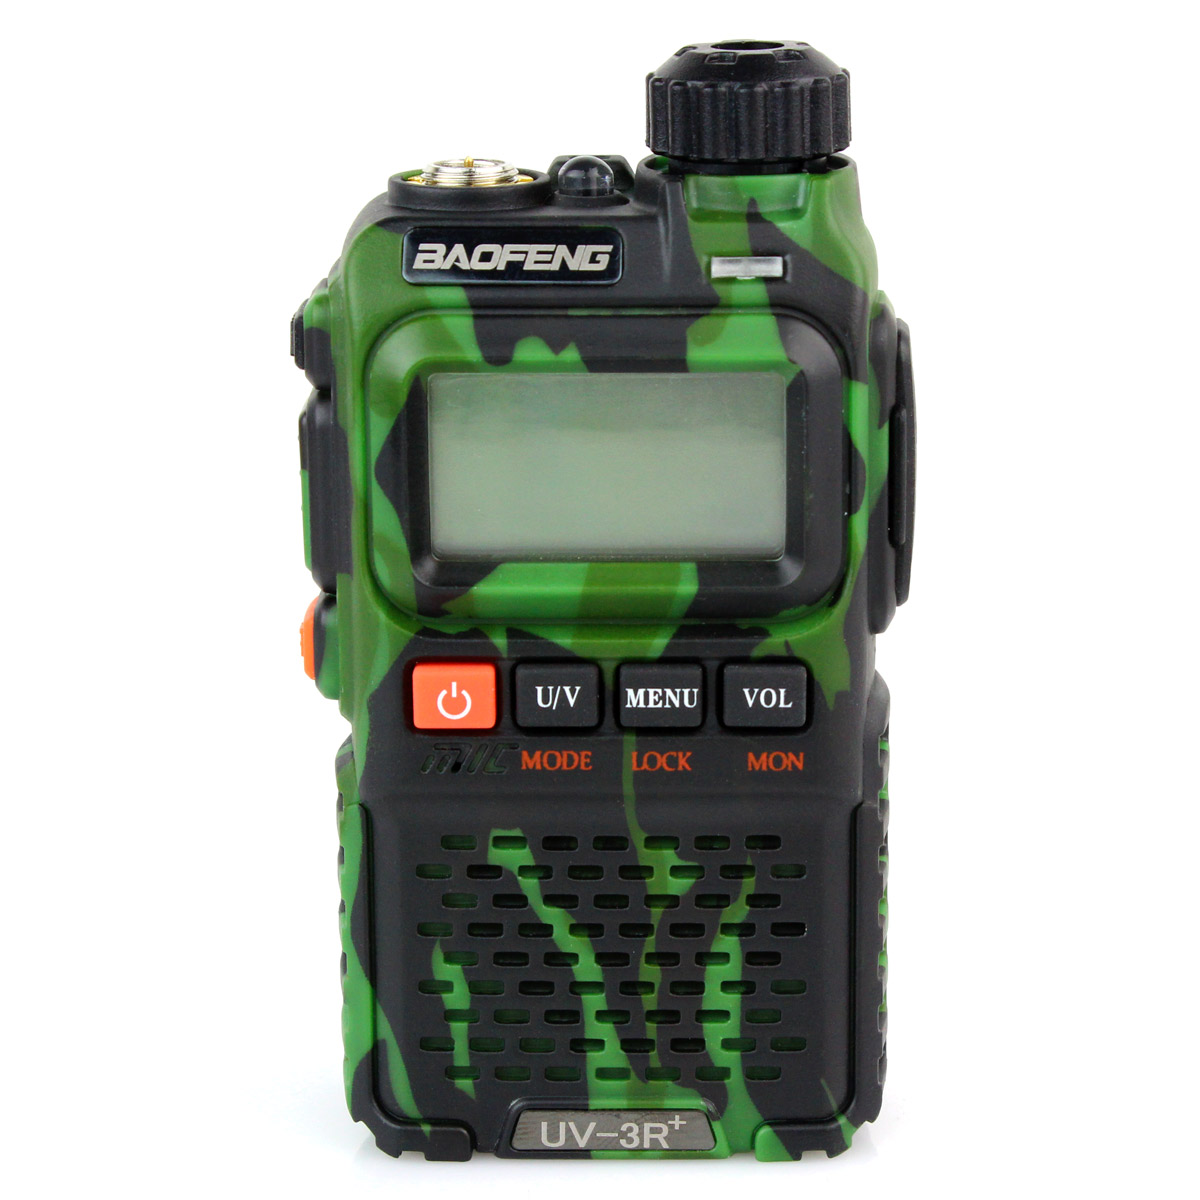 New Camouflage Green Walkie Talkie Baofeng UV-3R+ Dual Band 136-174Mhz 400-470MHz 3W 99CH DTMF VOX Two Way Radio